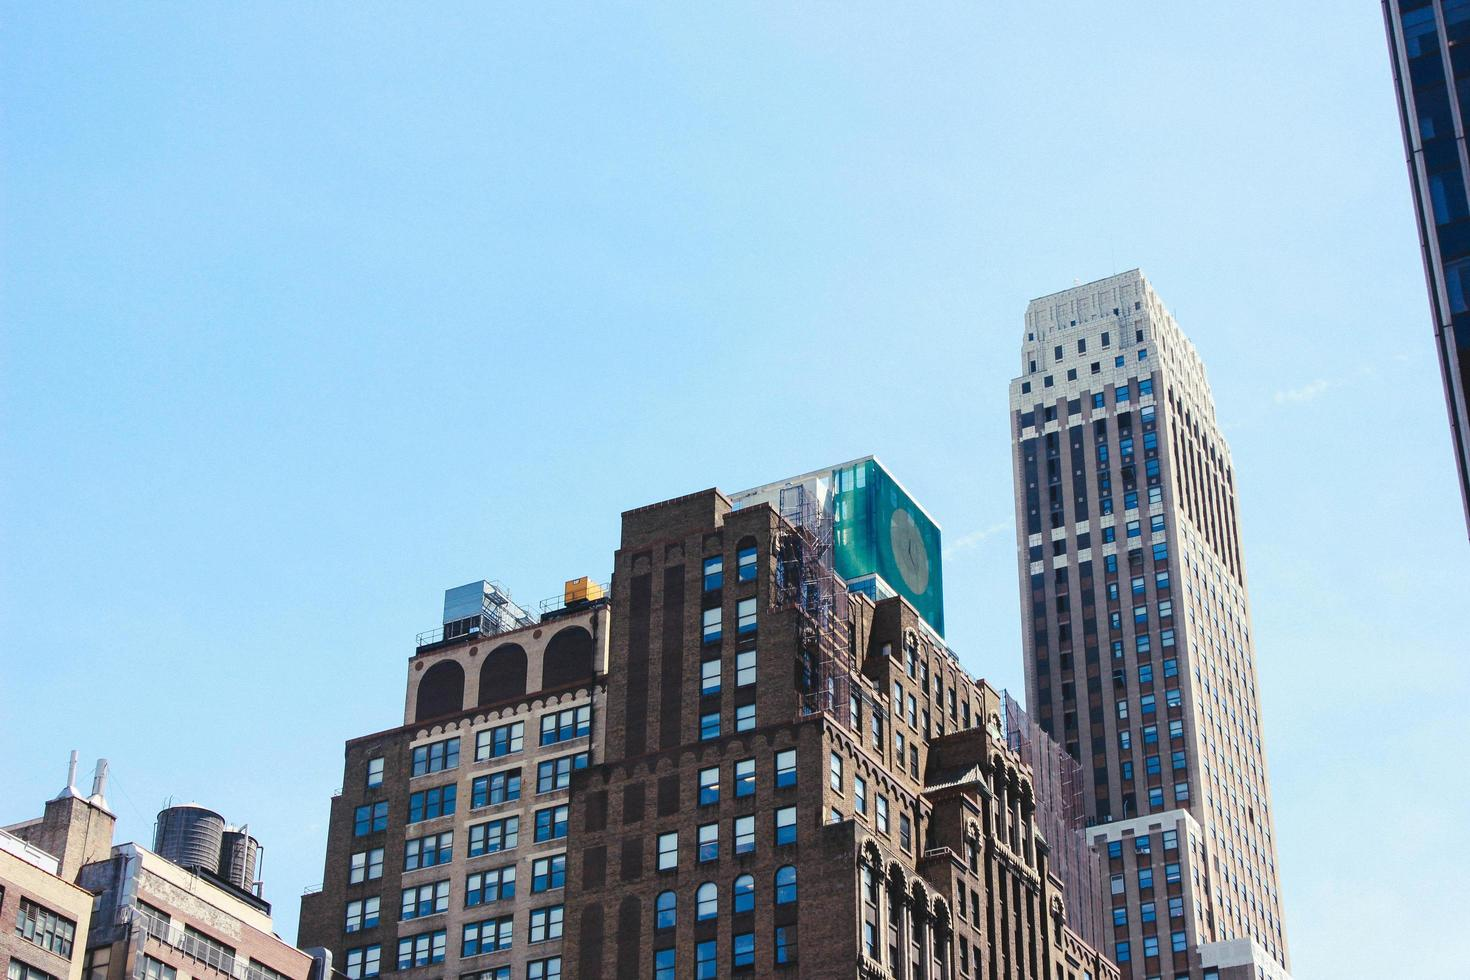 New York City, 2020 - High-rise buildings in NYC photo